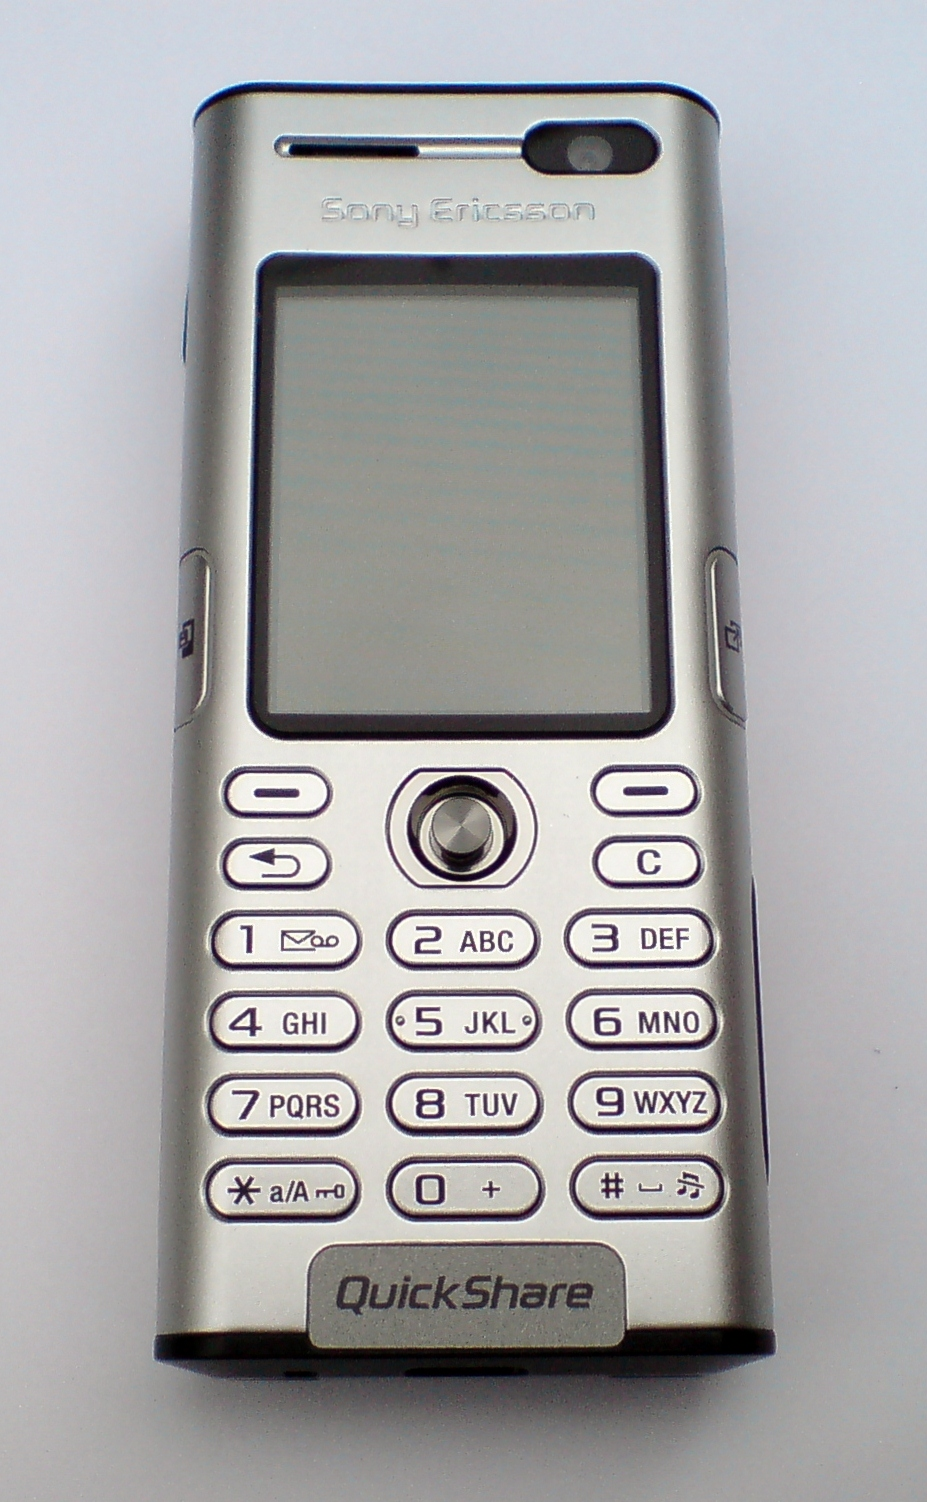 Sony Ericsson K600   Wikipedia  the free encyclopedia